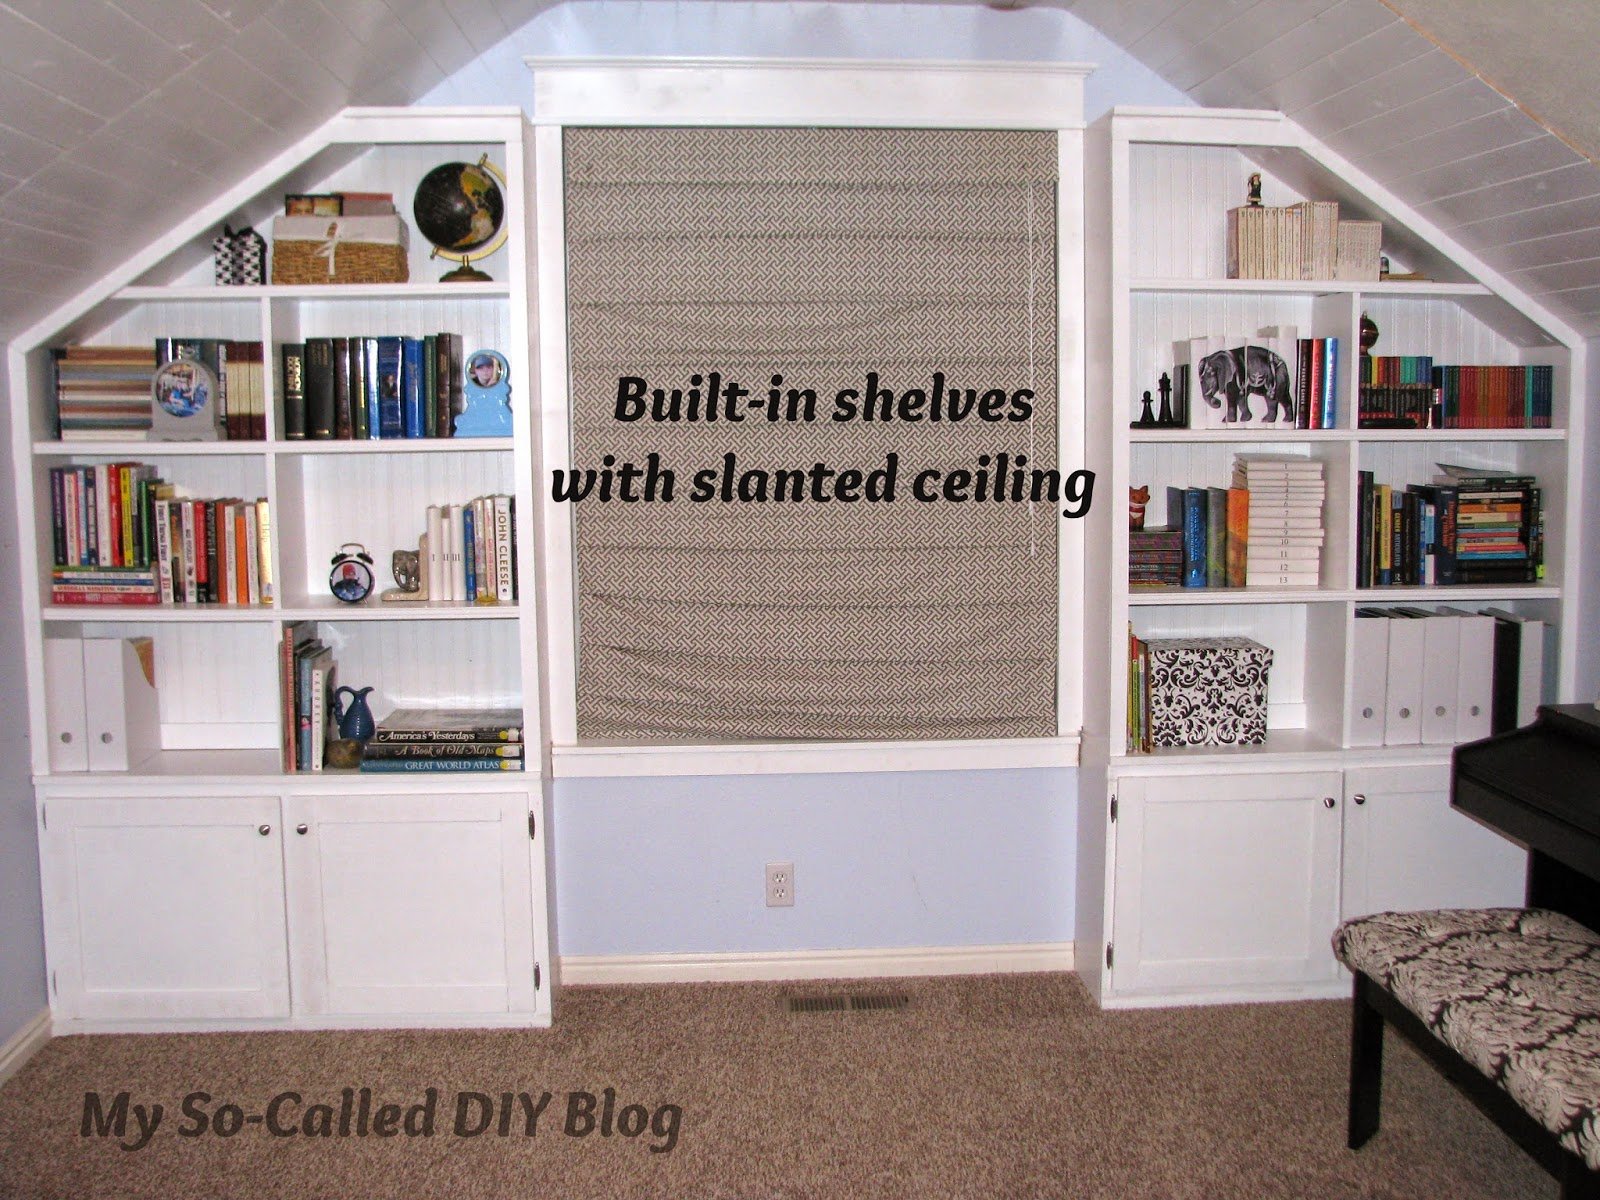 My So-Called DIY Blog: Project Bonus Room: Built-in Shelves With a ...